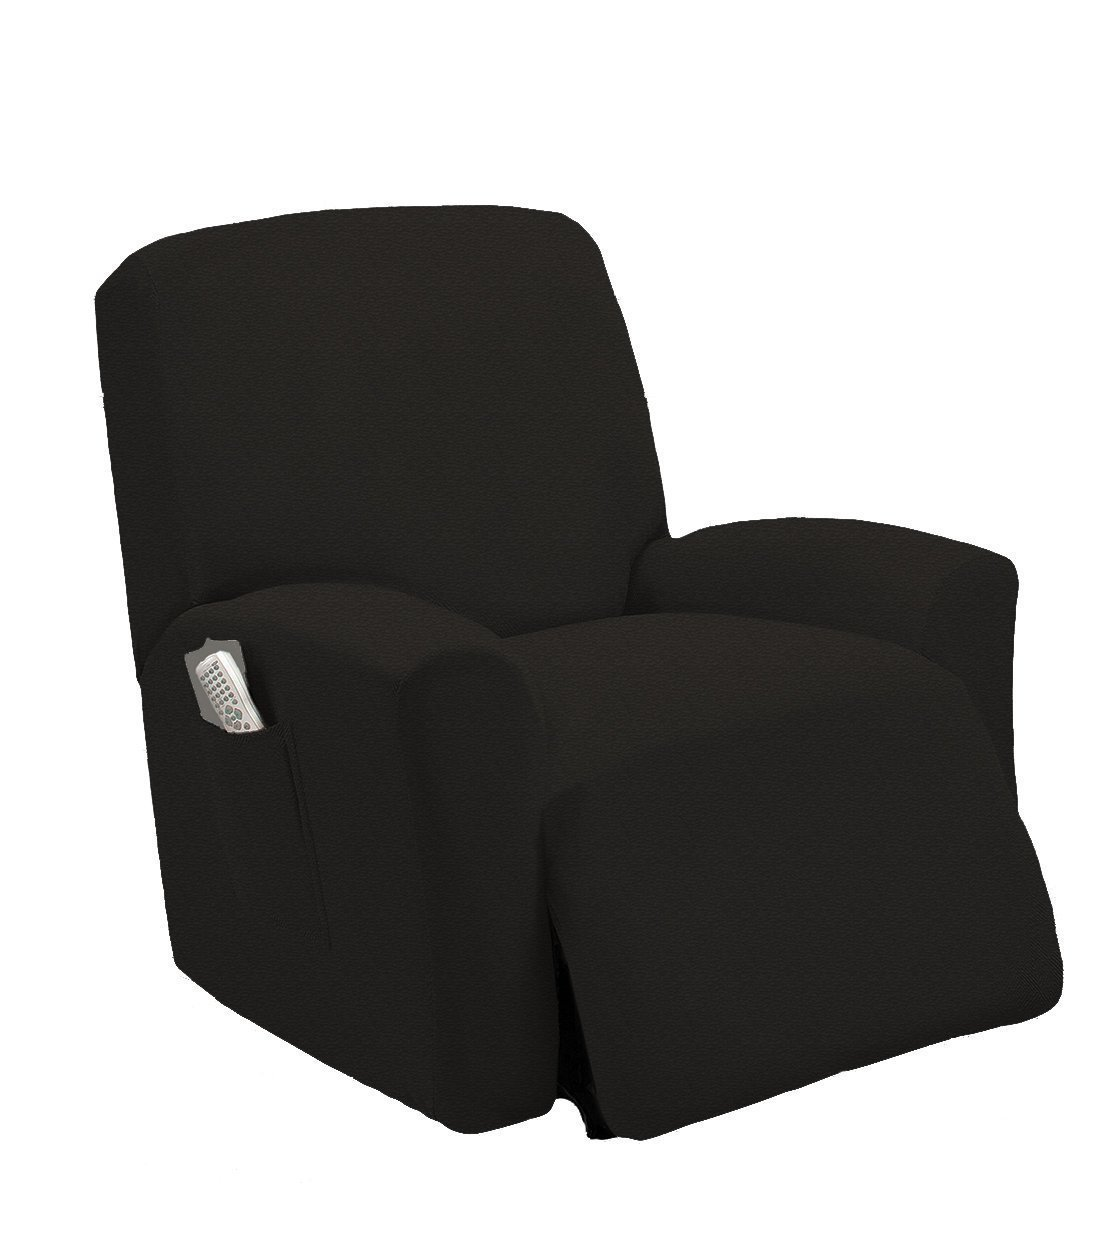 (Black) - Elegant Home One piece Stretch Sterling Recliner Chair Cover Furniture Slipcovers with Remote Pocket Fit most Recliner Chairs Stella (Black)   B078PJ4RBR